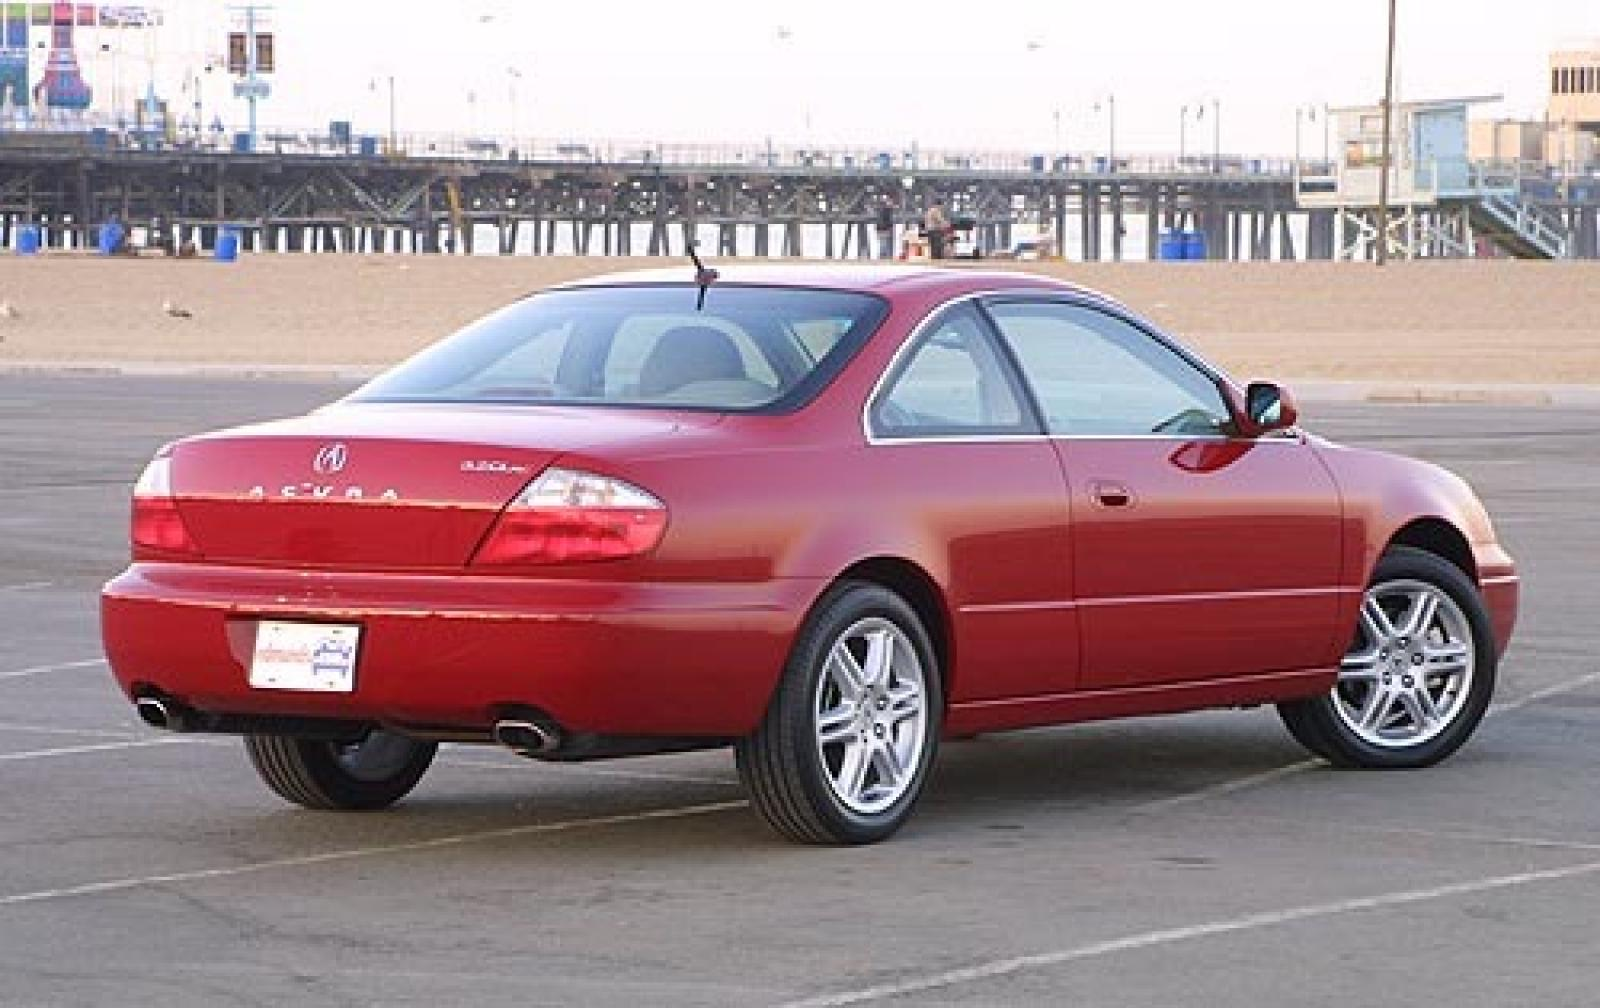 2003 acura cl information and photos zombiedrive. Black Bedroom Furniture Sets. Home Design Ideas